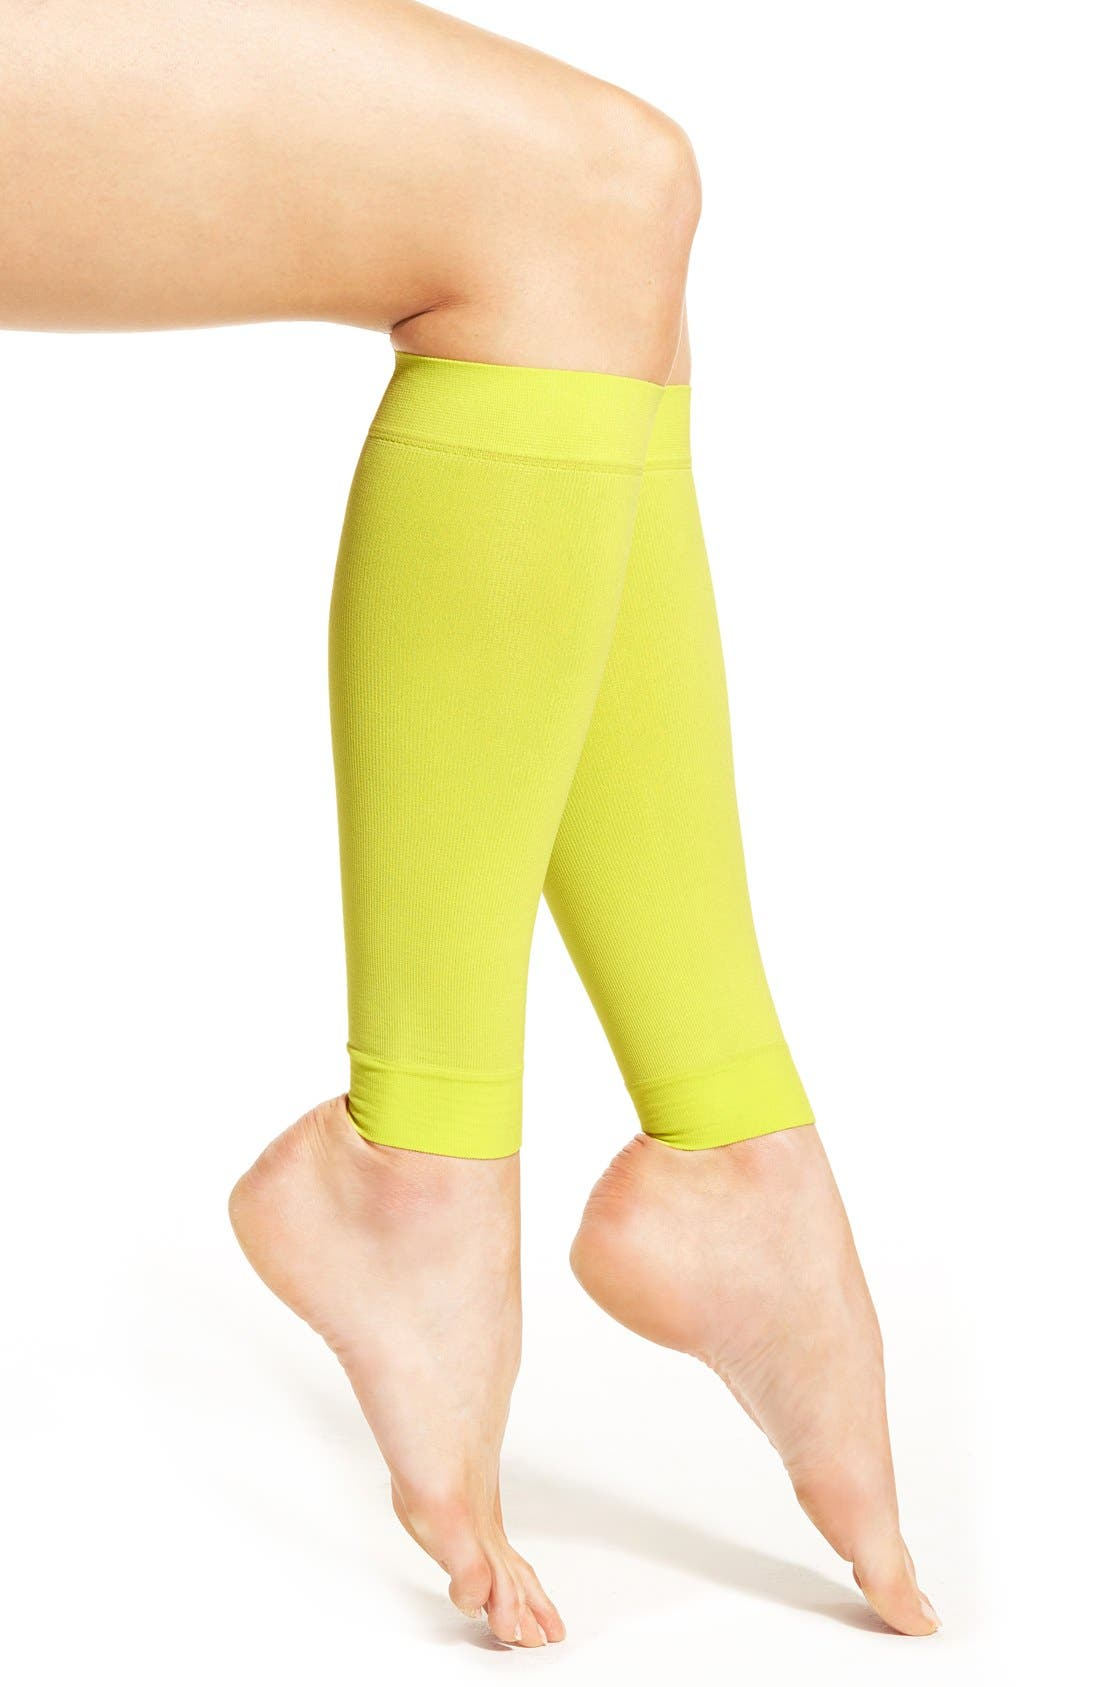 Main Image - INSIGNIA by SIGVARIS Graduated Compression Calf Sleeves